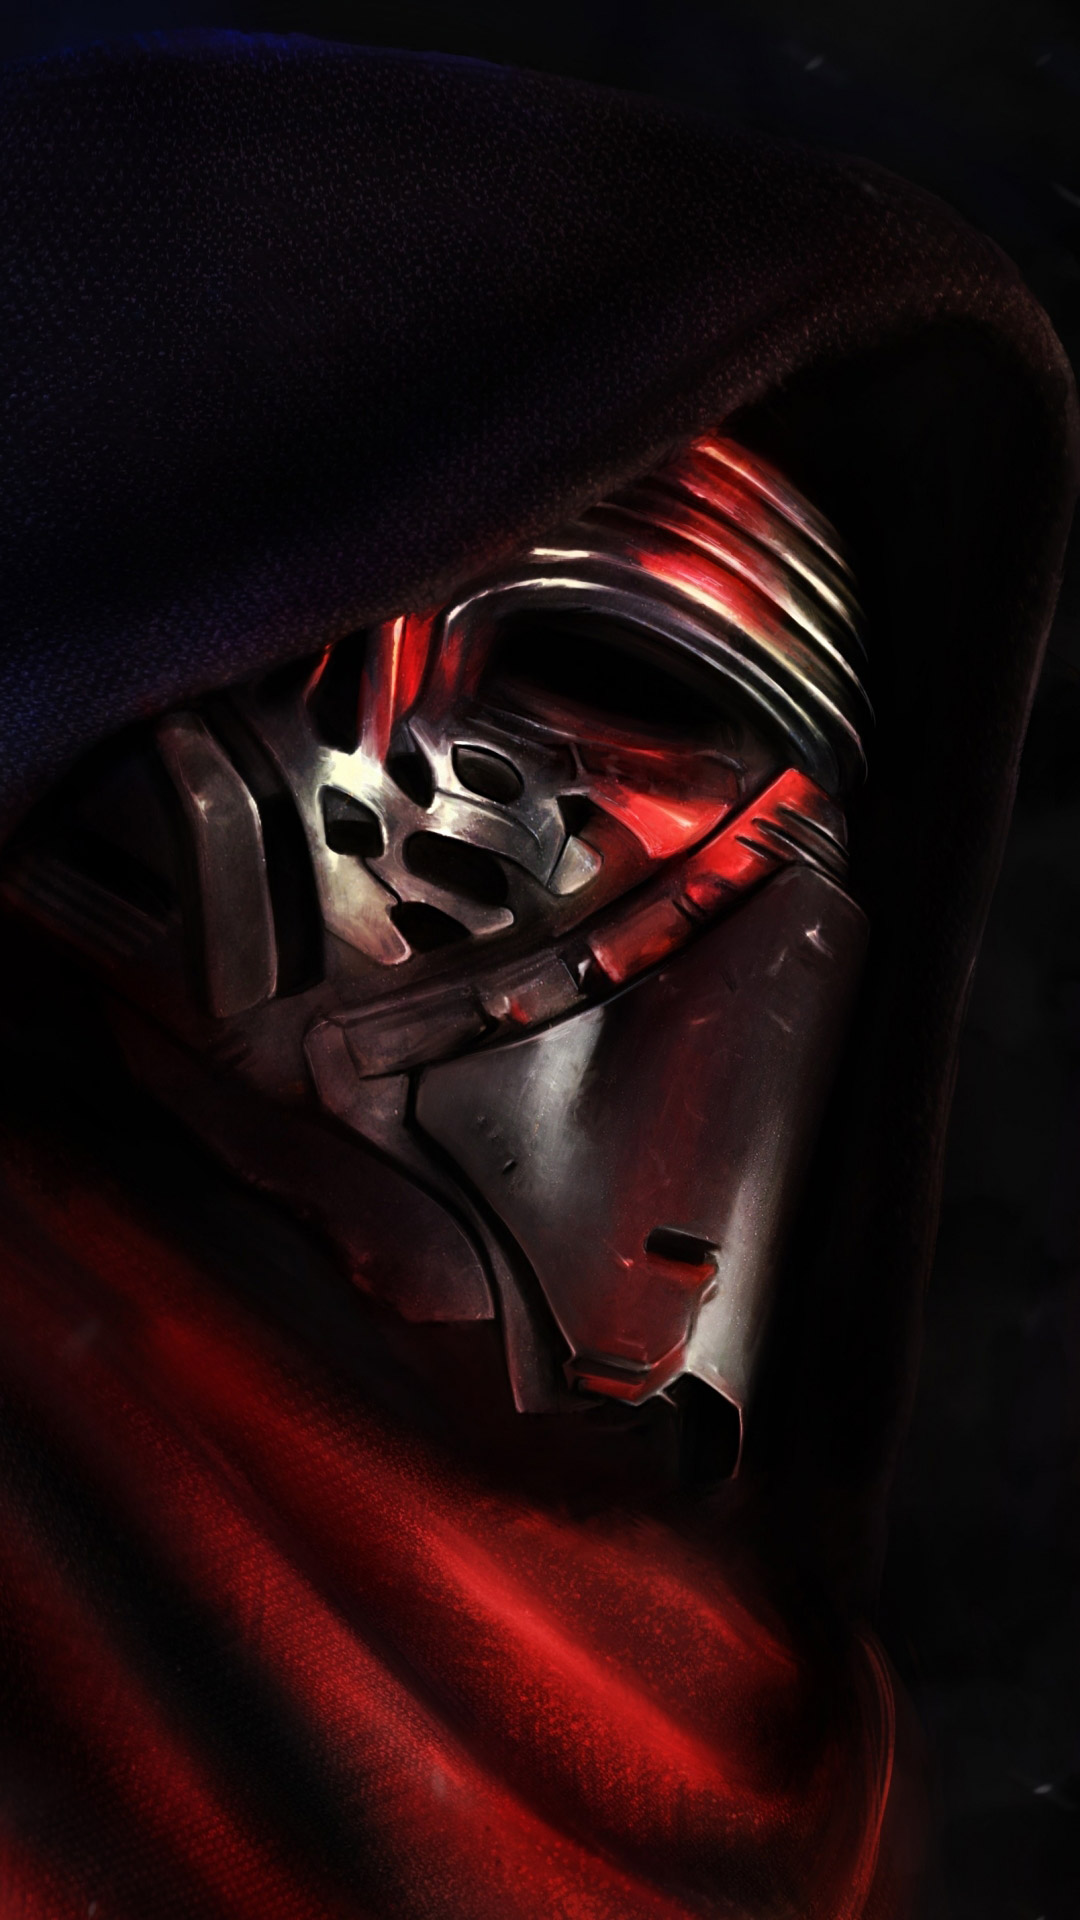 Star-Wars-The-Force-Awakens-Wallpaper-Kylo-Ren-profile